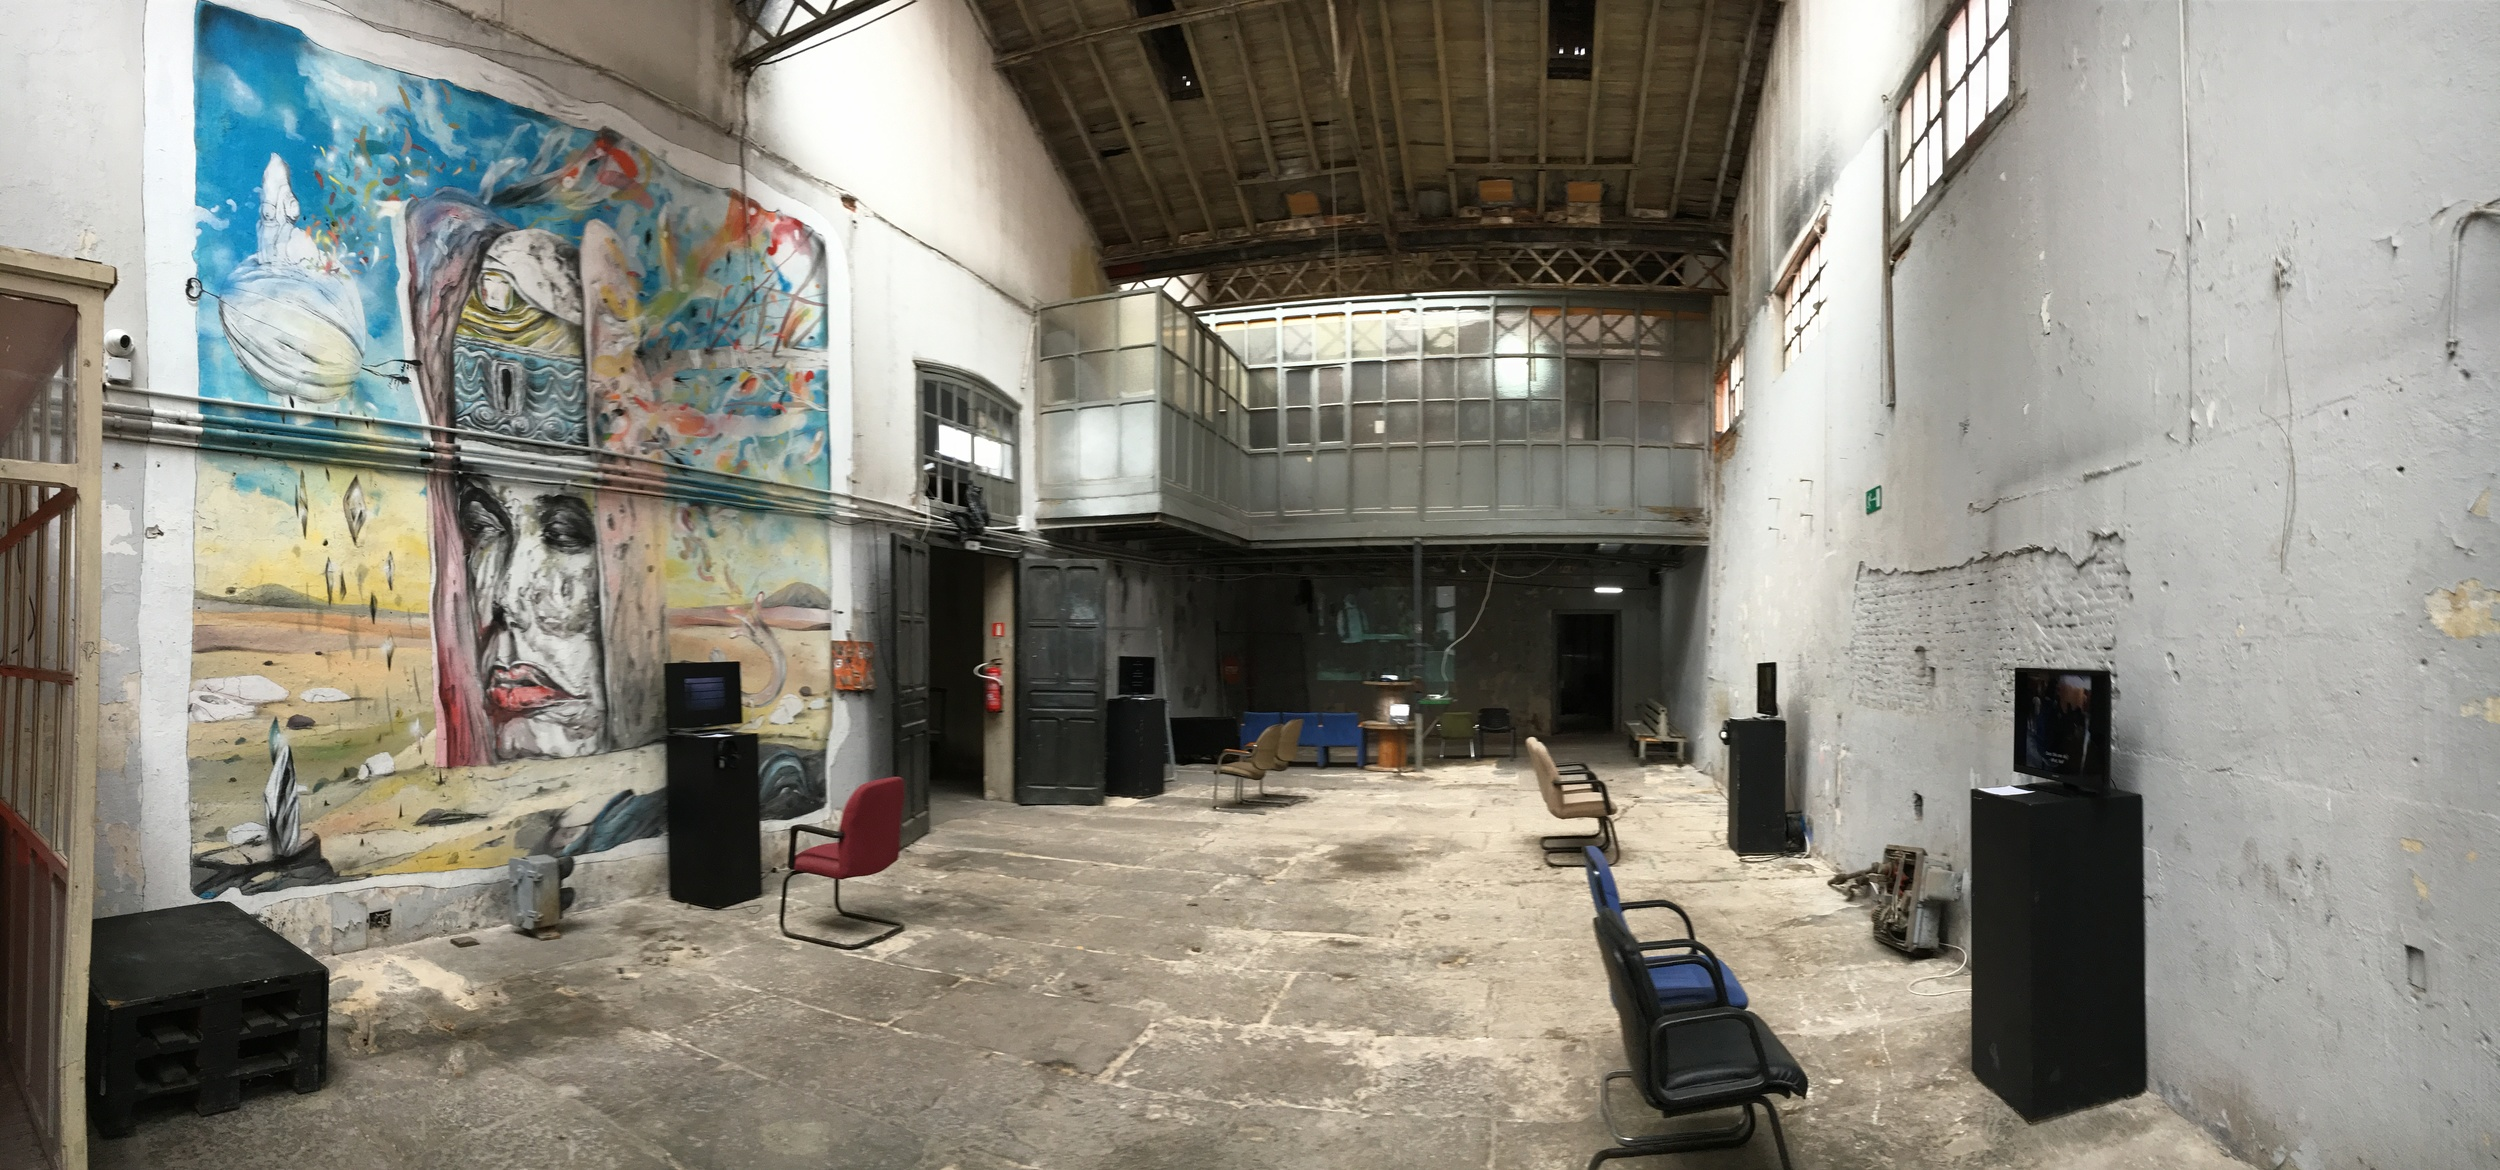 The grungy yet charming exhibition space of La Neomudejar.